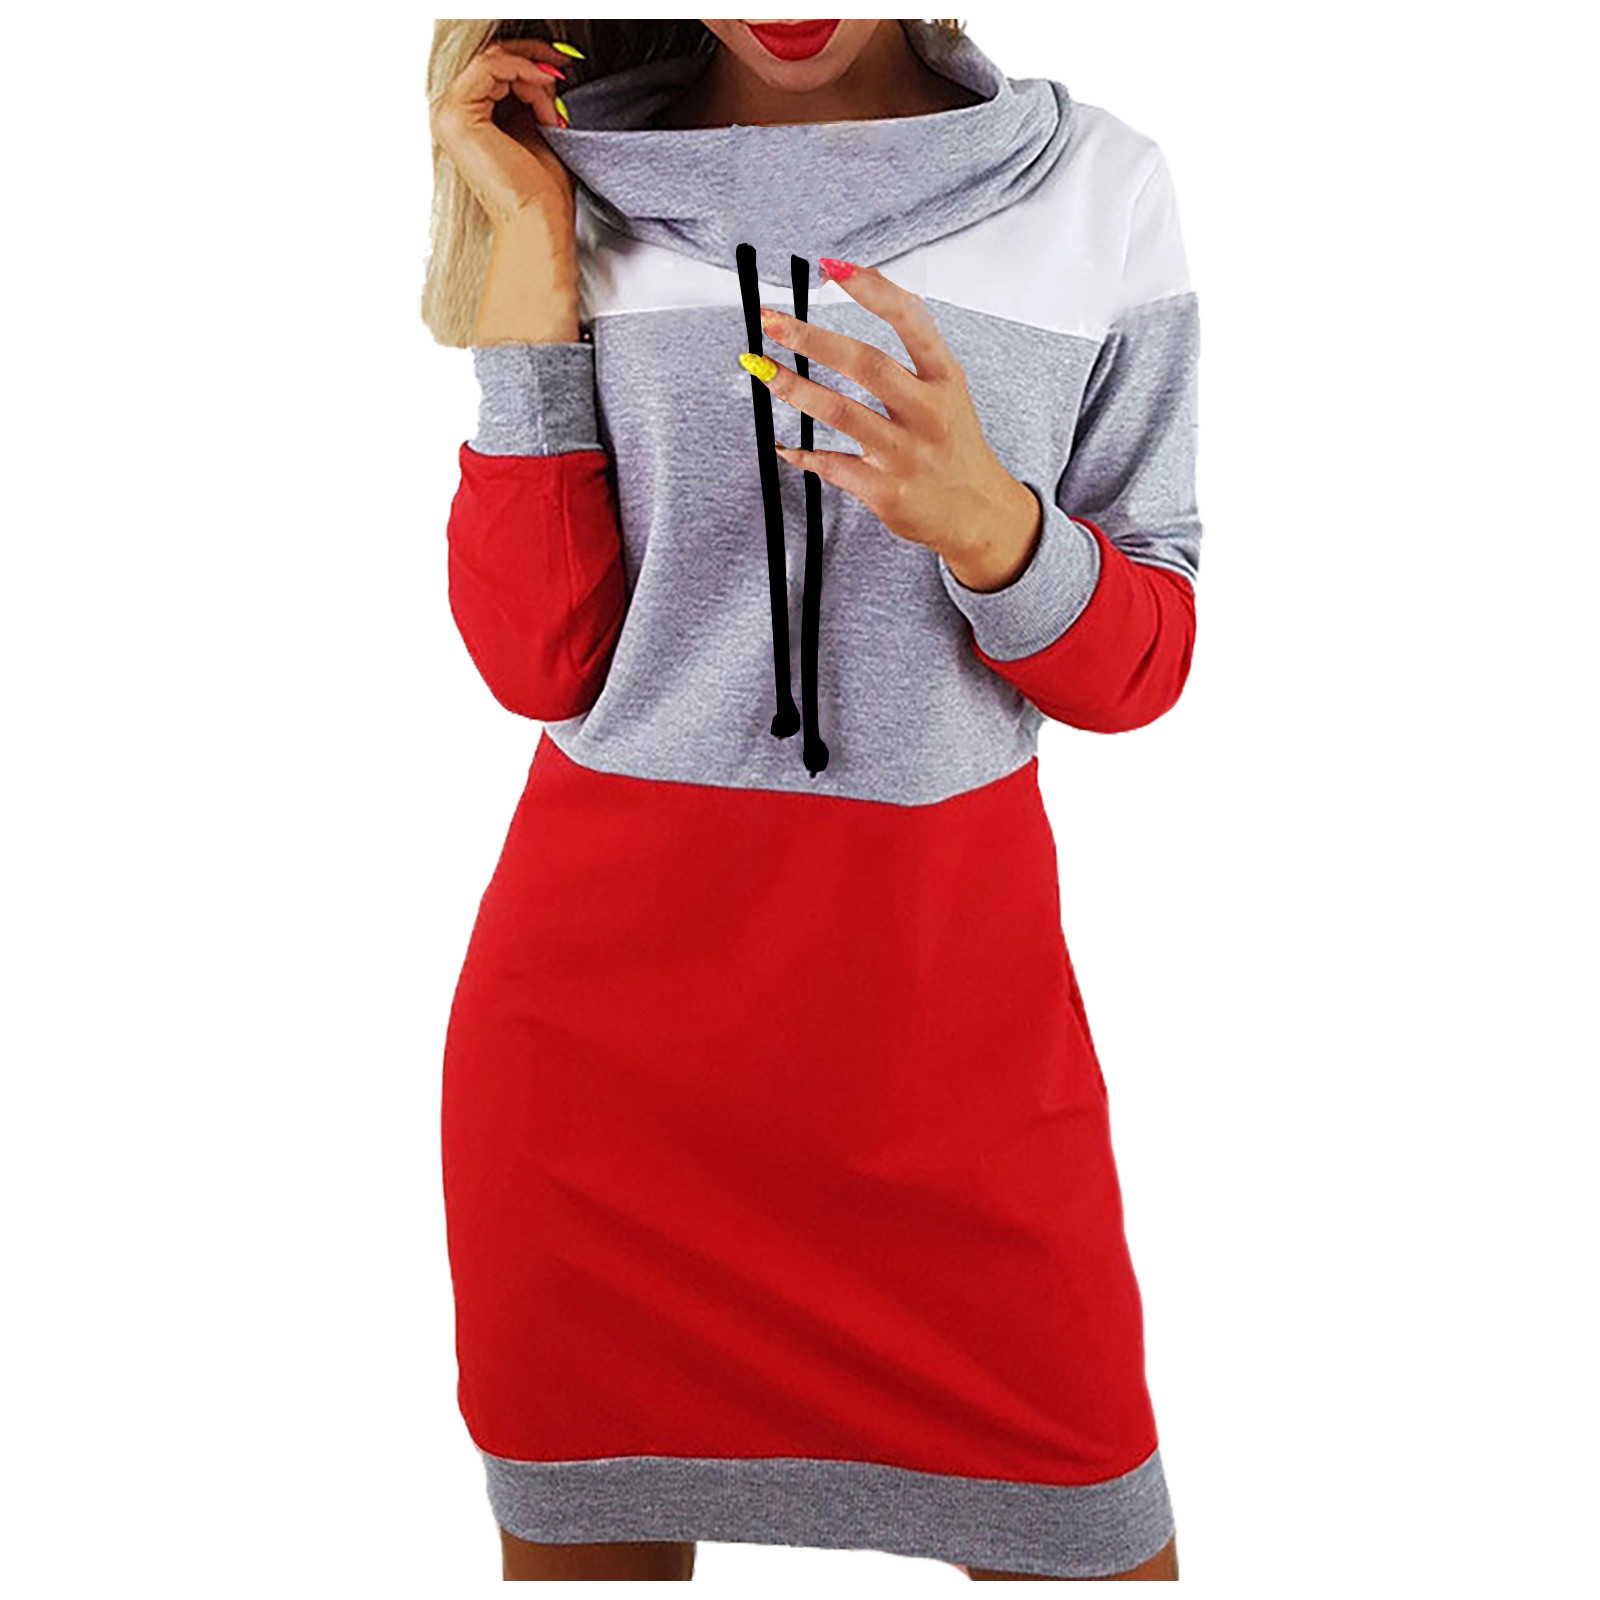 vestido de mujer Women Collared Long Sleeve Dress Ladies Casual Bodycons Short Mini Sundress femme robe